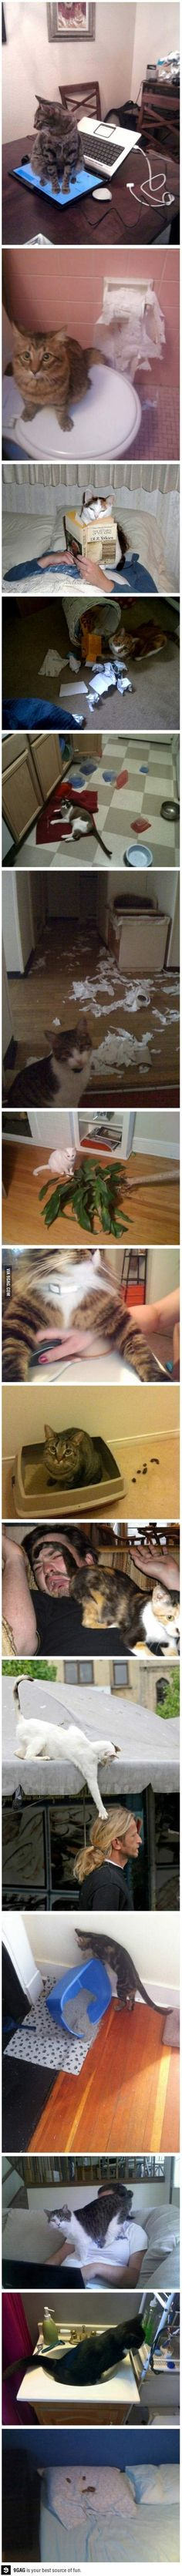 Cats are a**holes.  These are a few of the reasons why I won't own one.